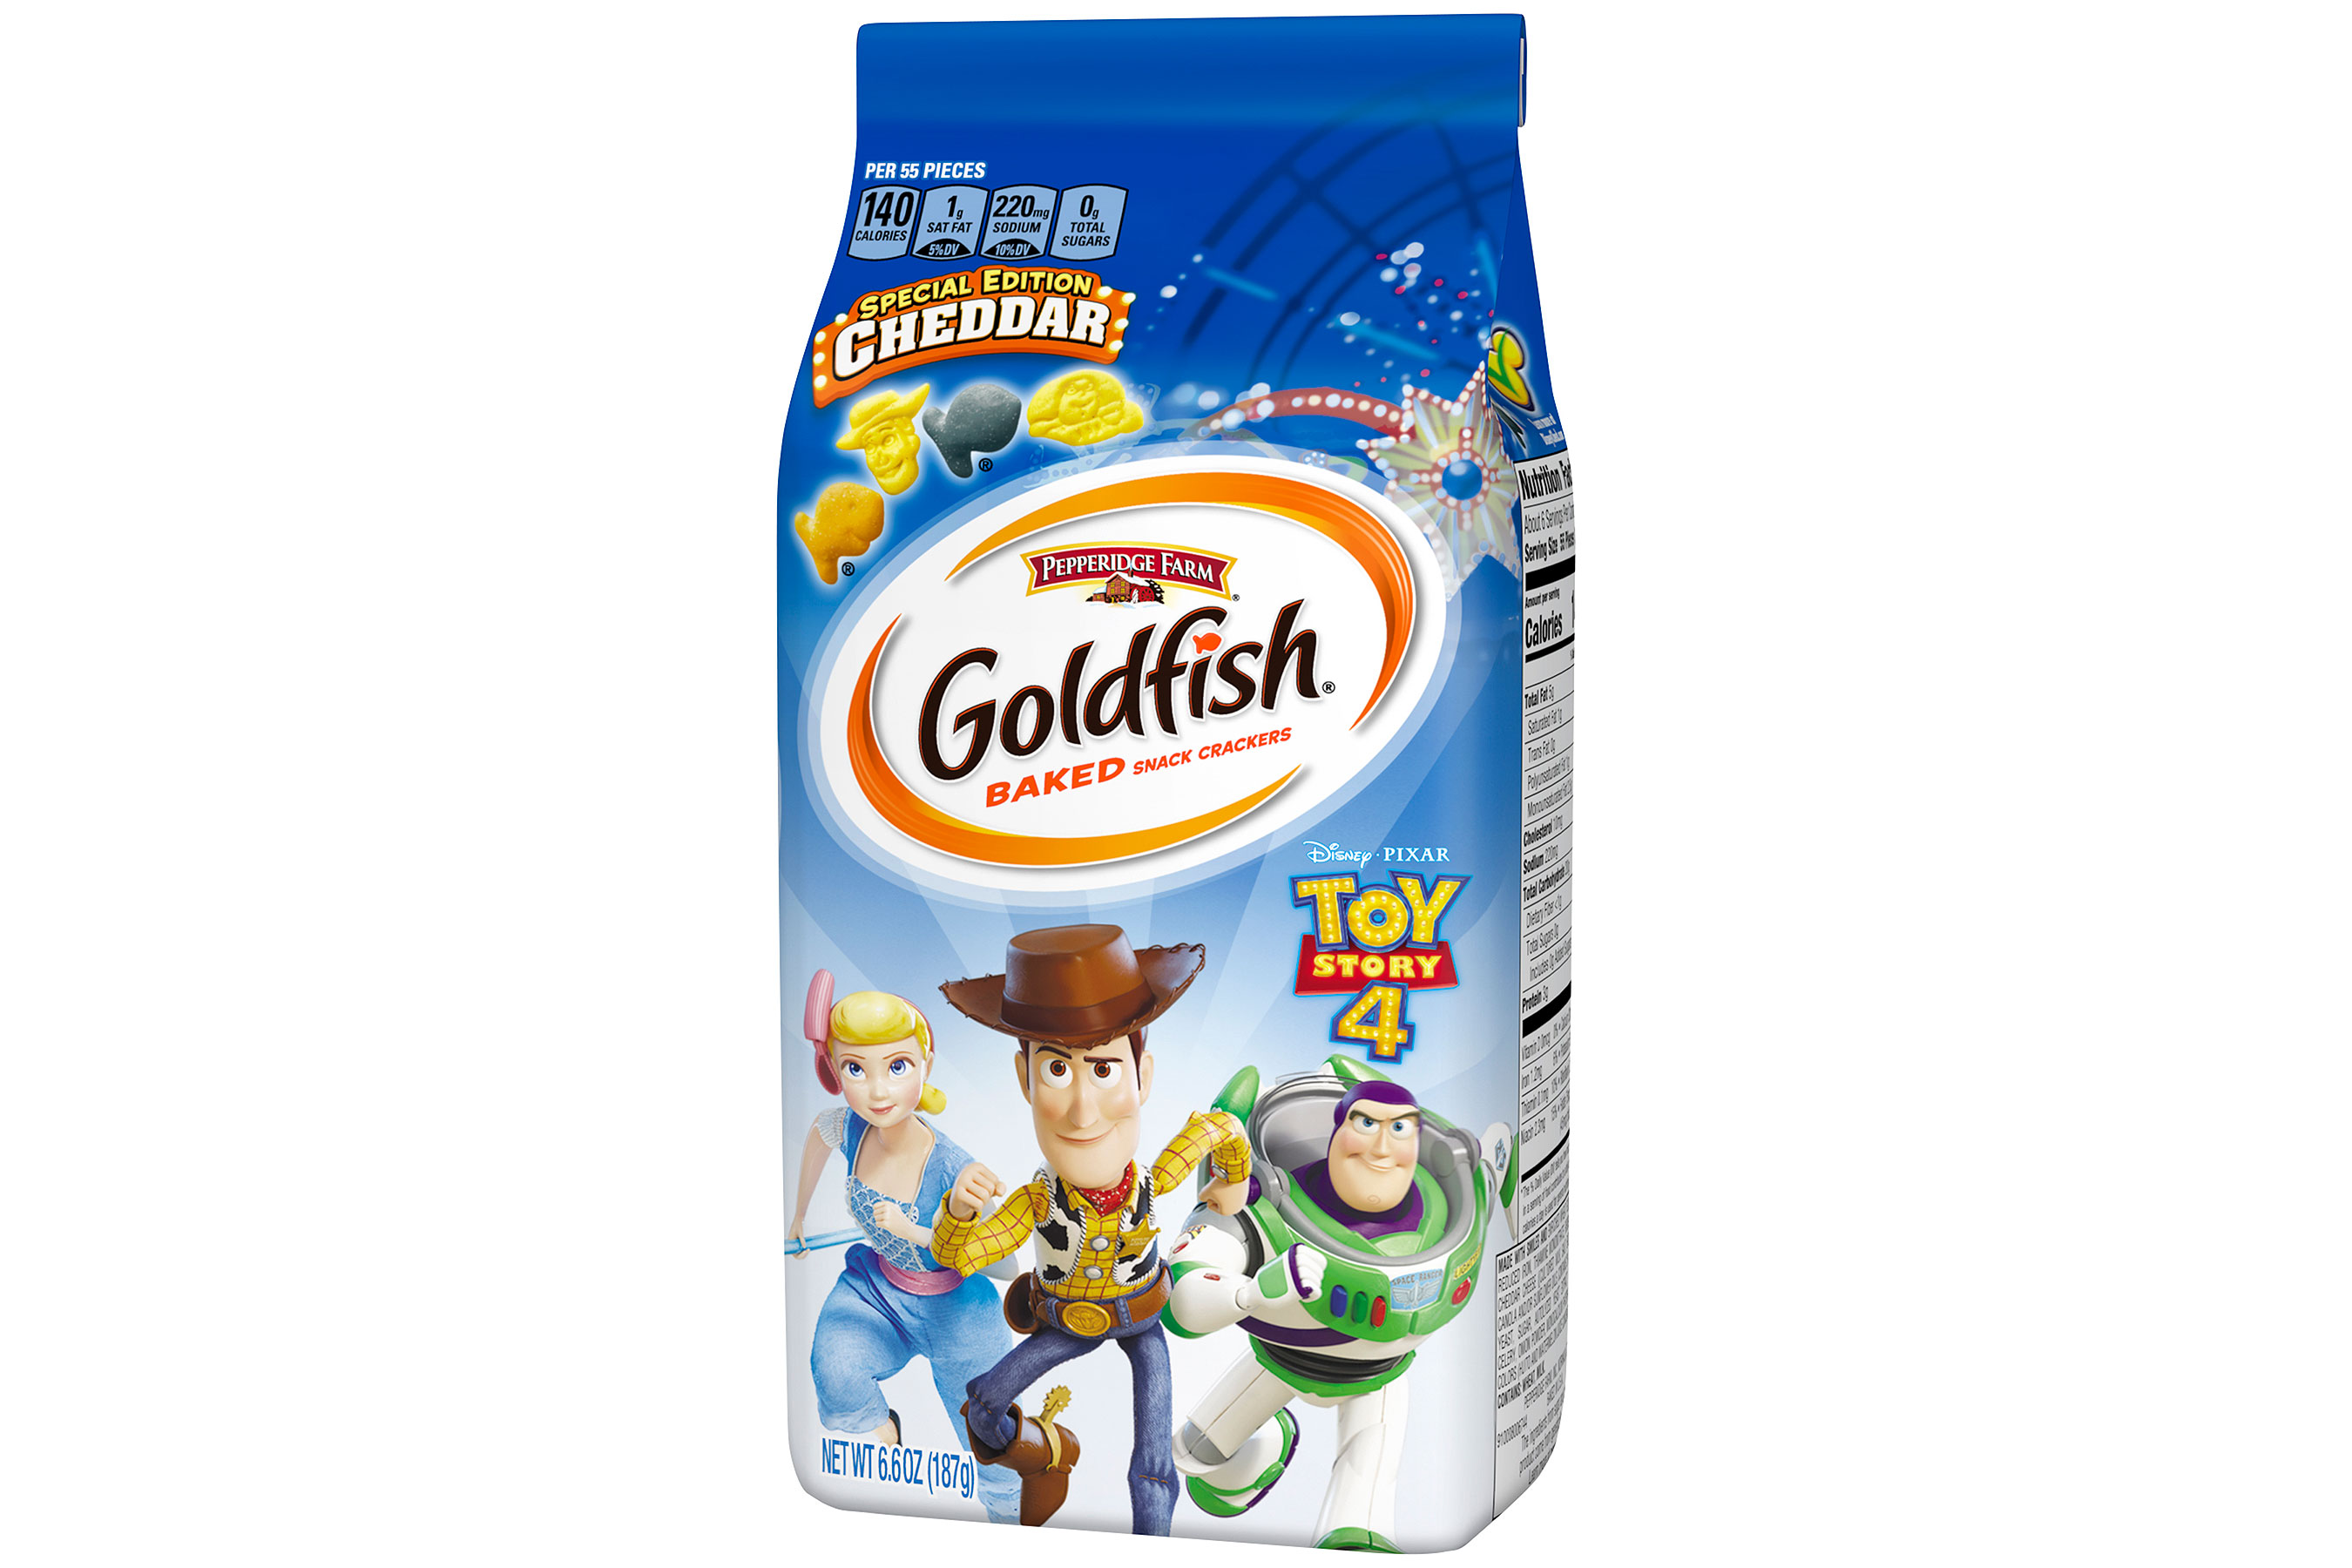 Toy Story Goldfish Have Arrived with Woody and Buzz Lightyear-Shaped Crackers